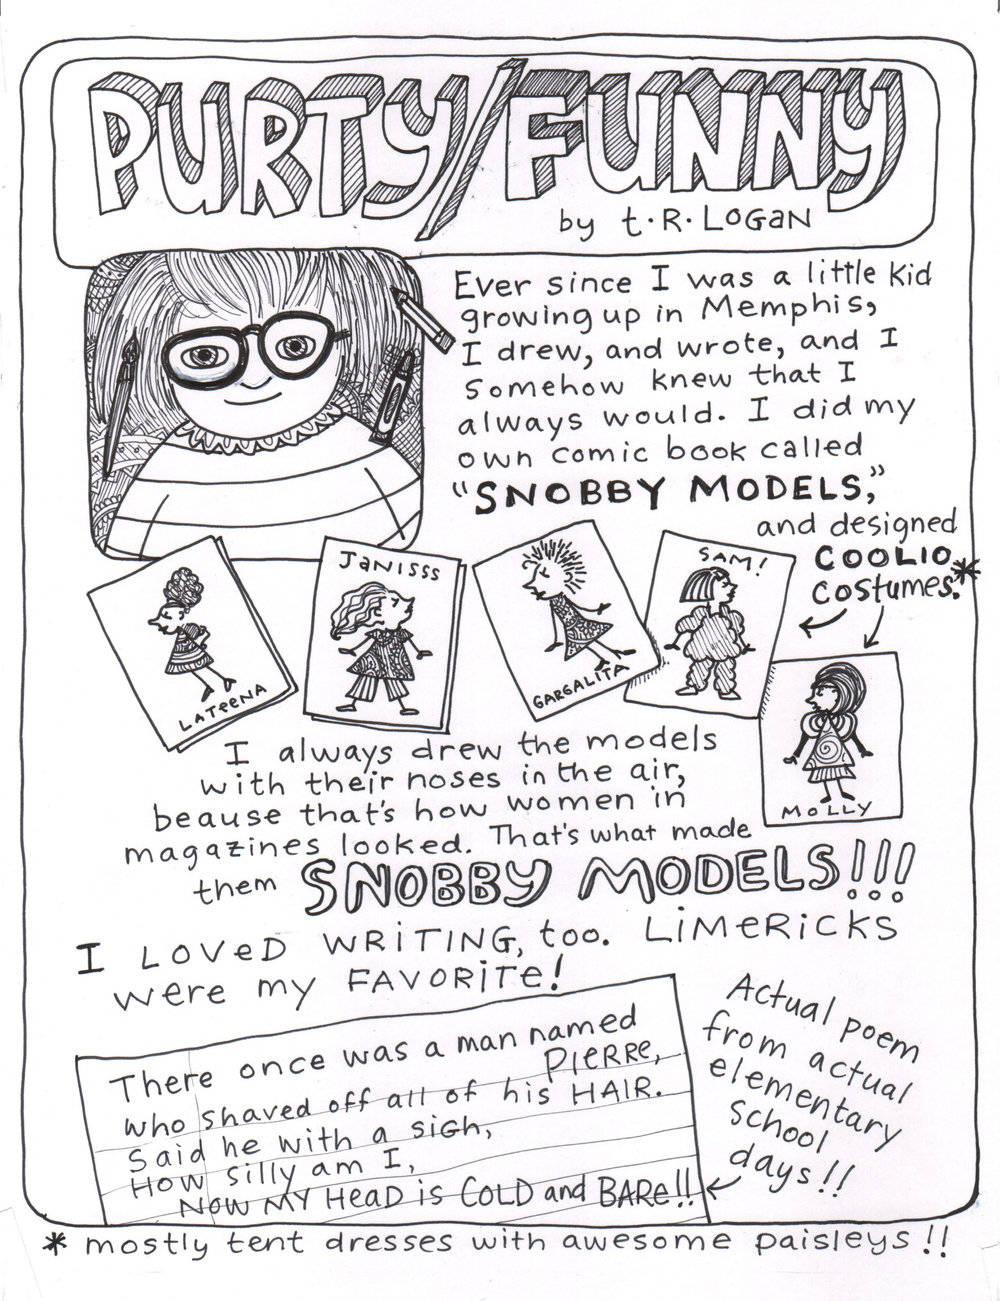 Purty Funny Page 1 copy.jpg